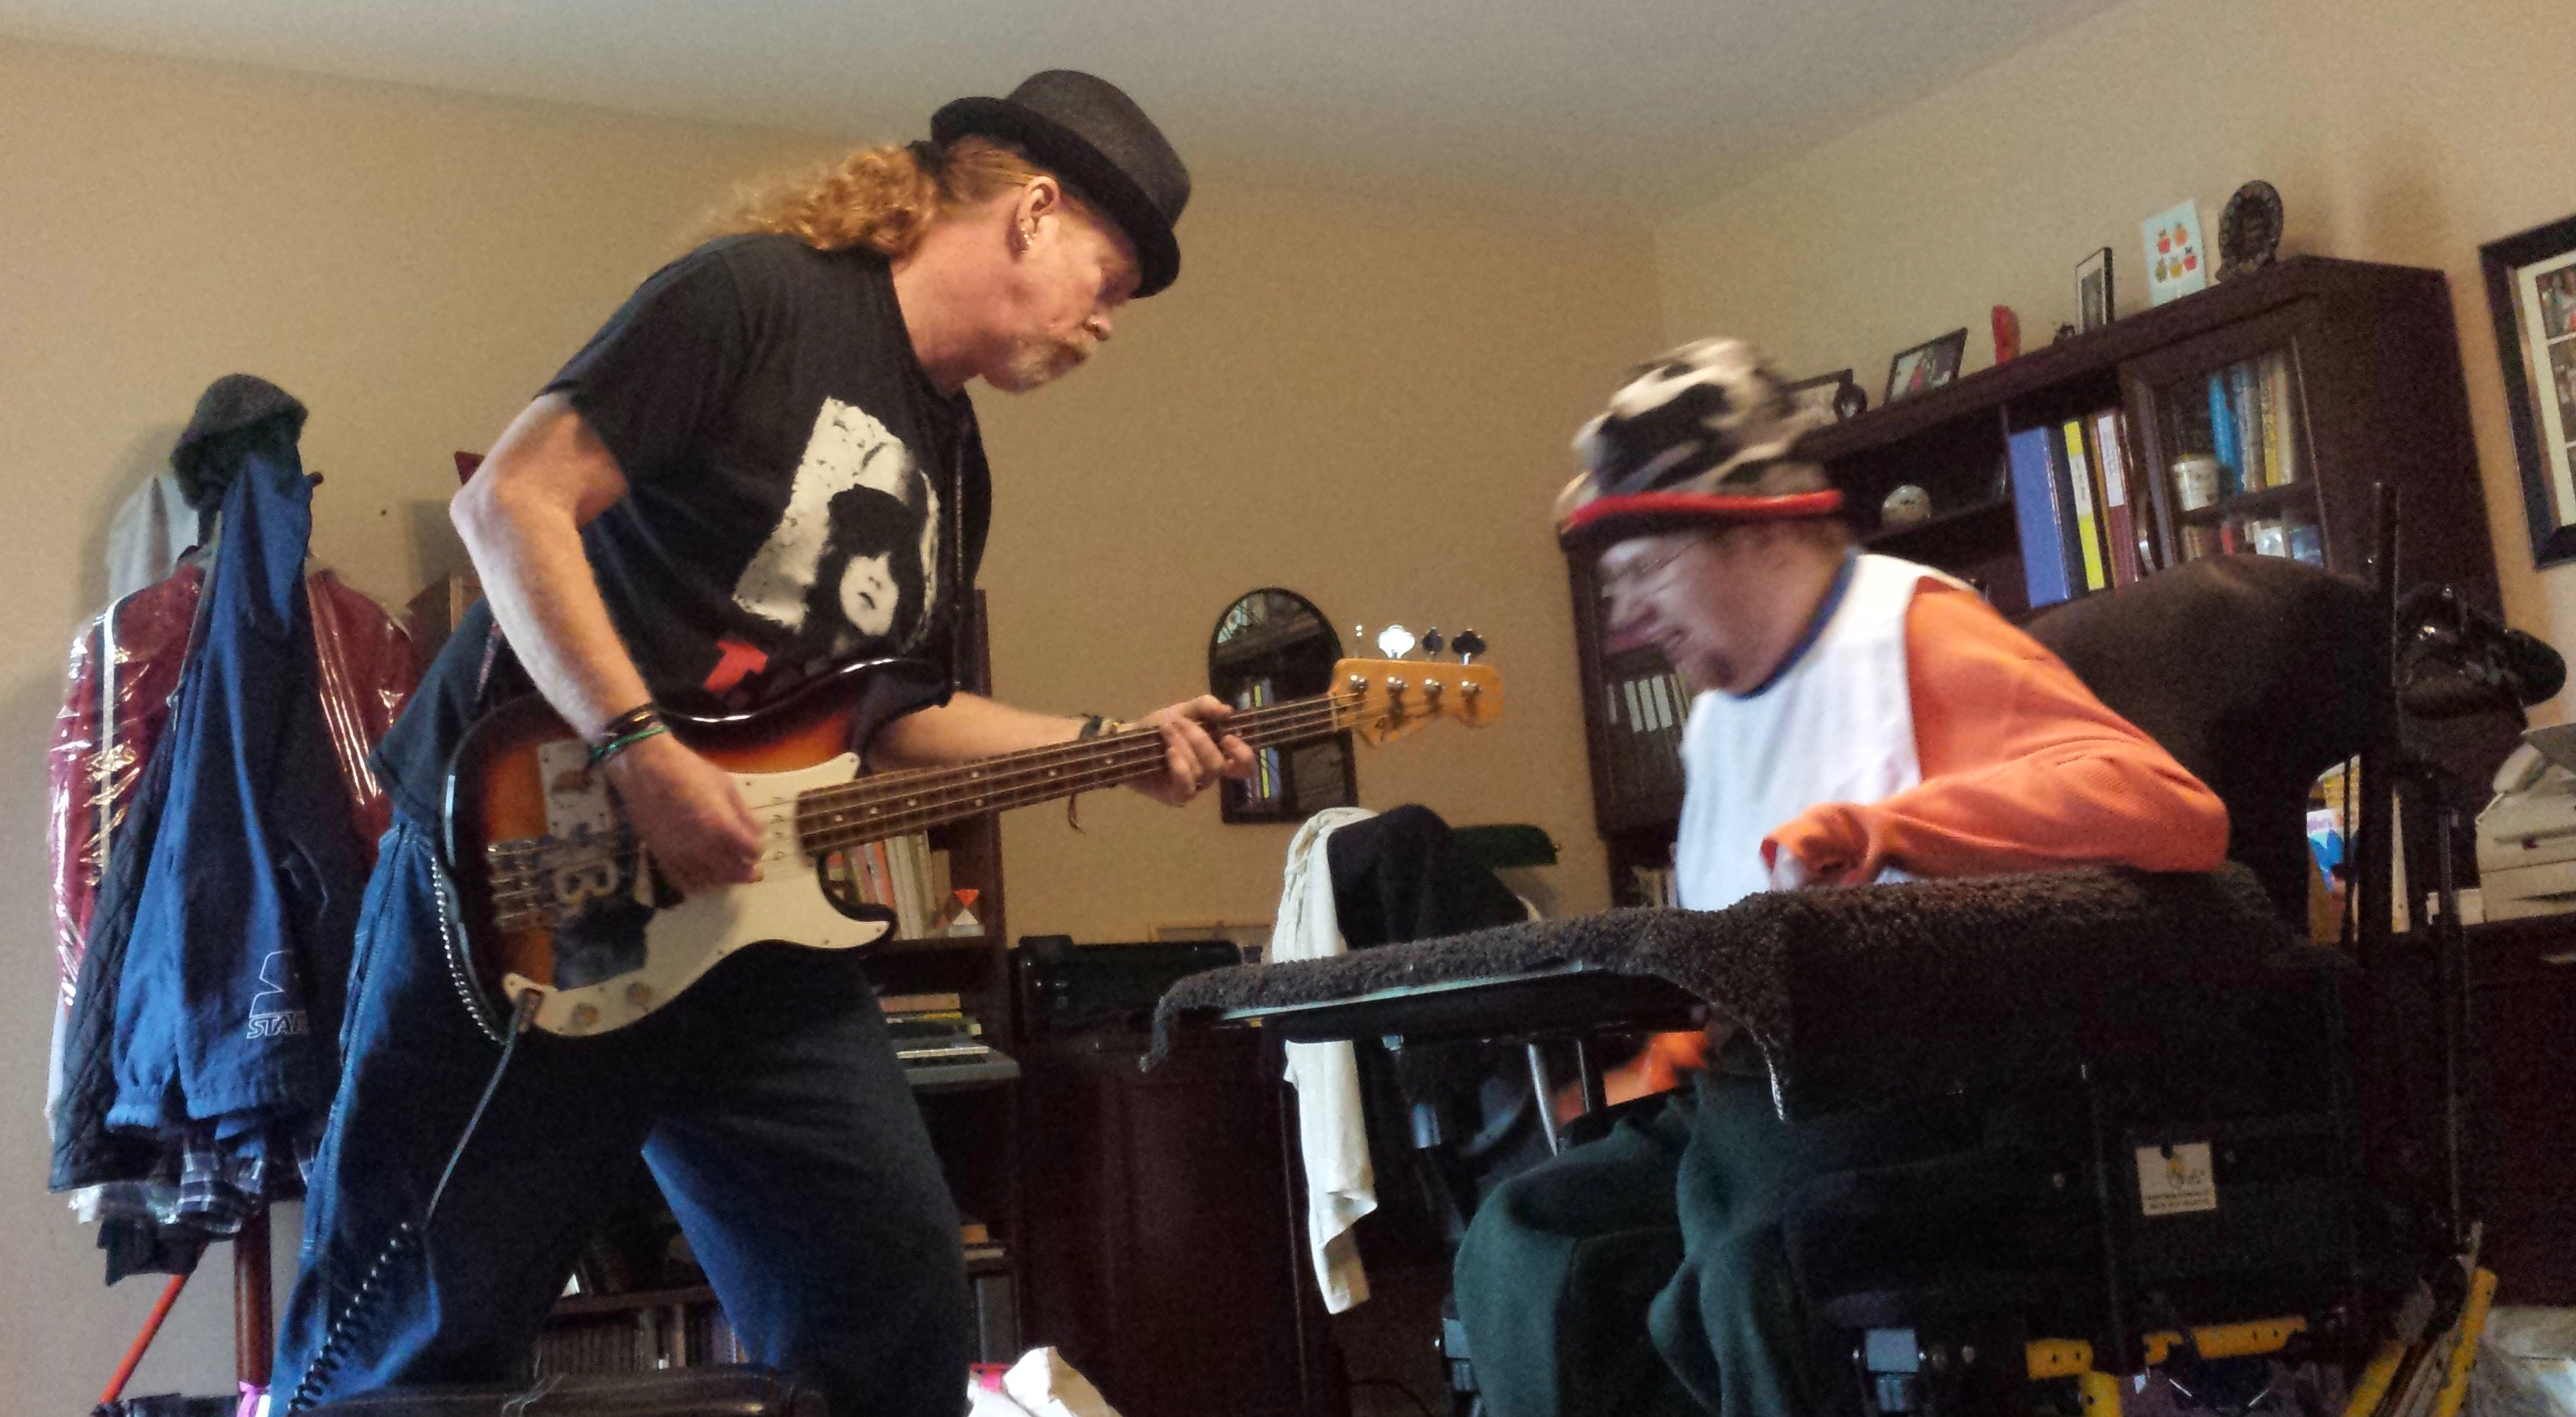 John and Travis Making Music Together